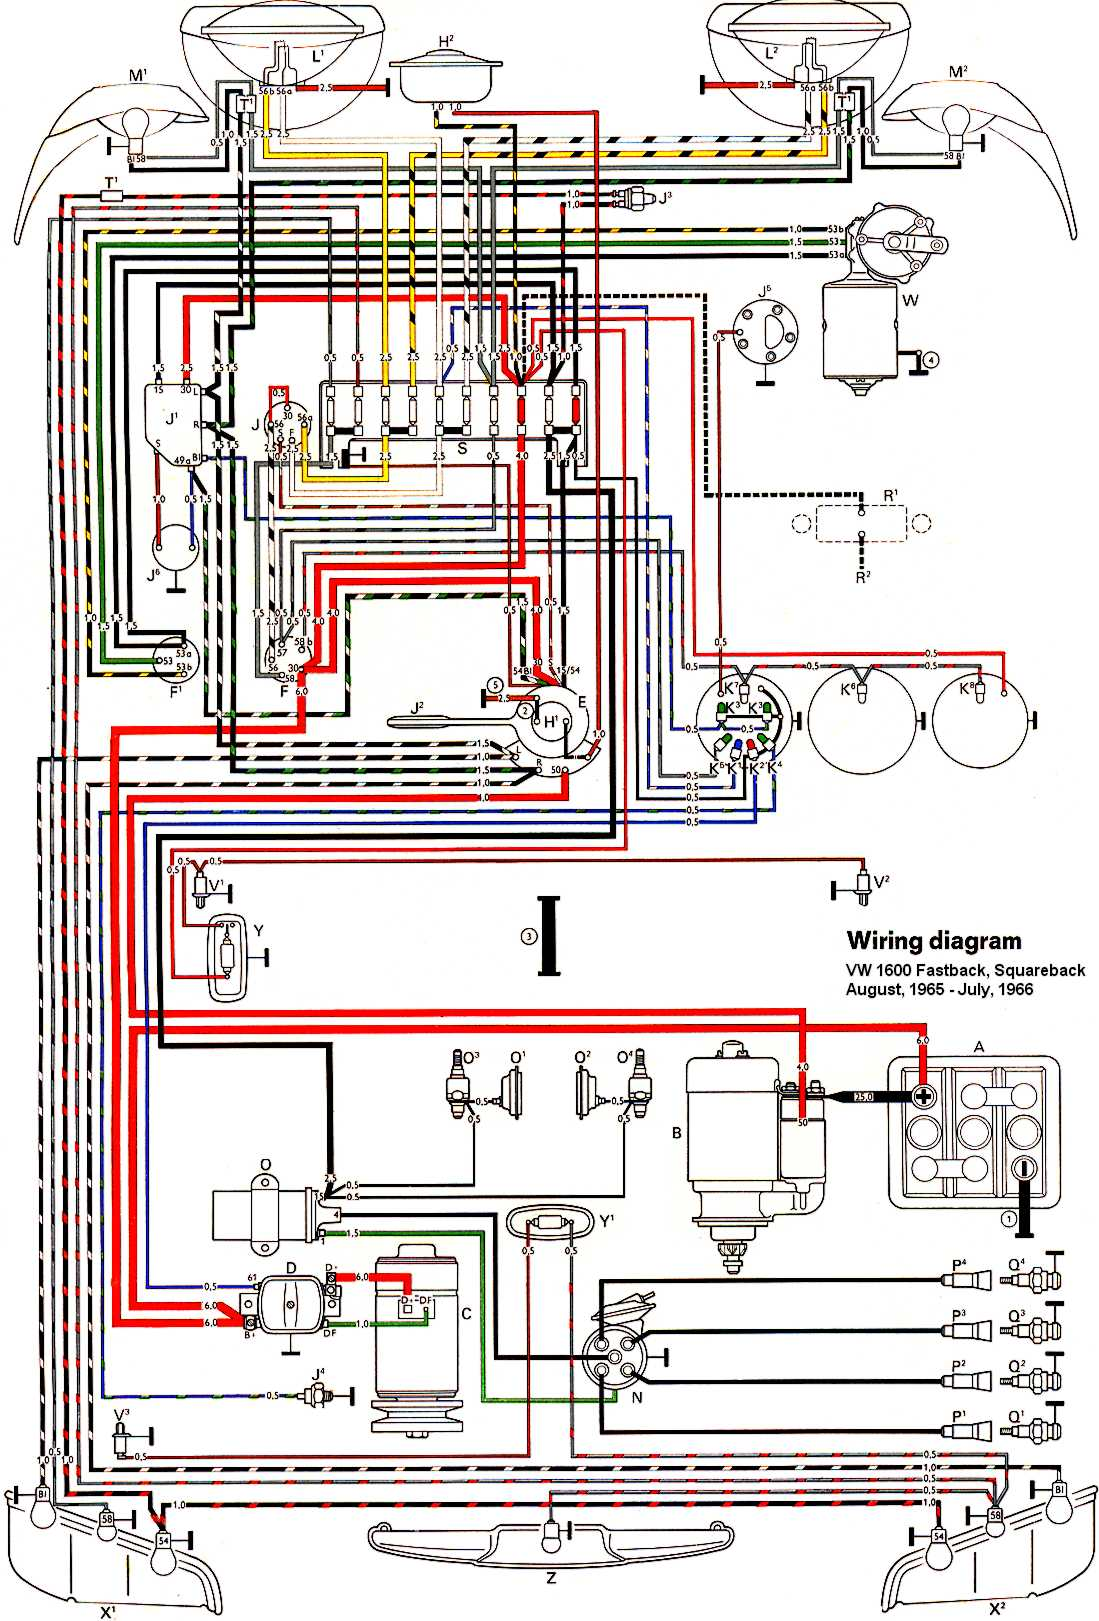 thesamba com type 3 wiring diagrams rh thesamba com 71 VW Bug Wiring 1969 VW Bug Wiring Schematic